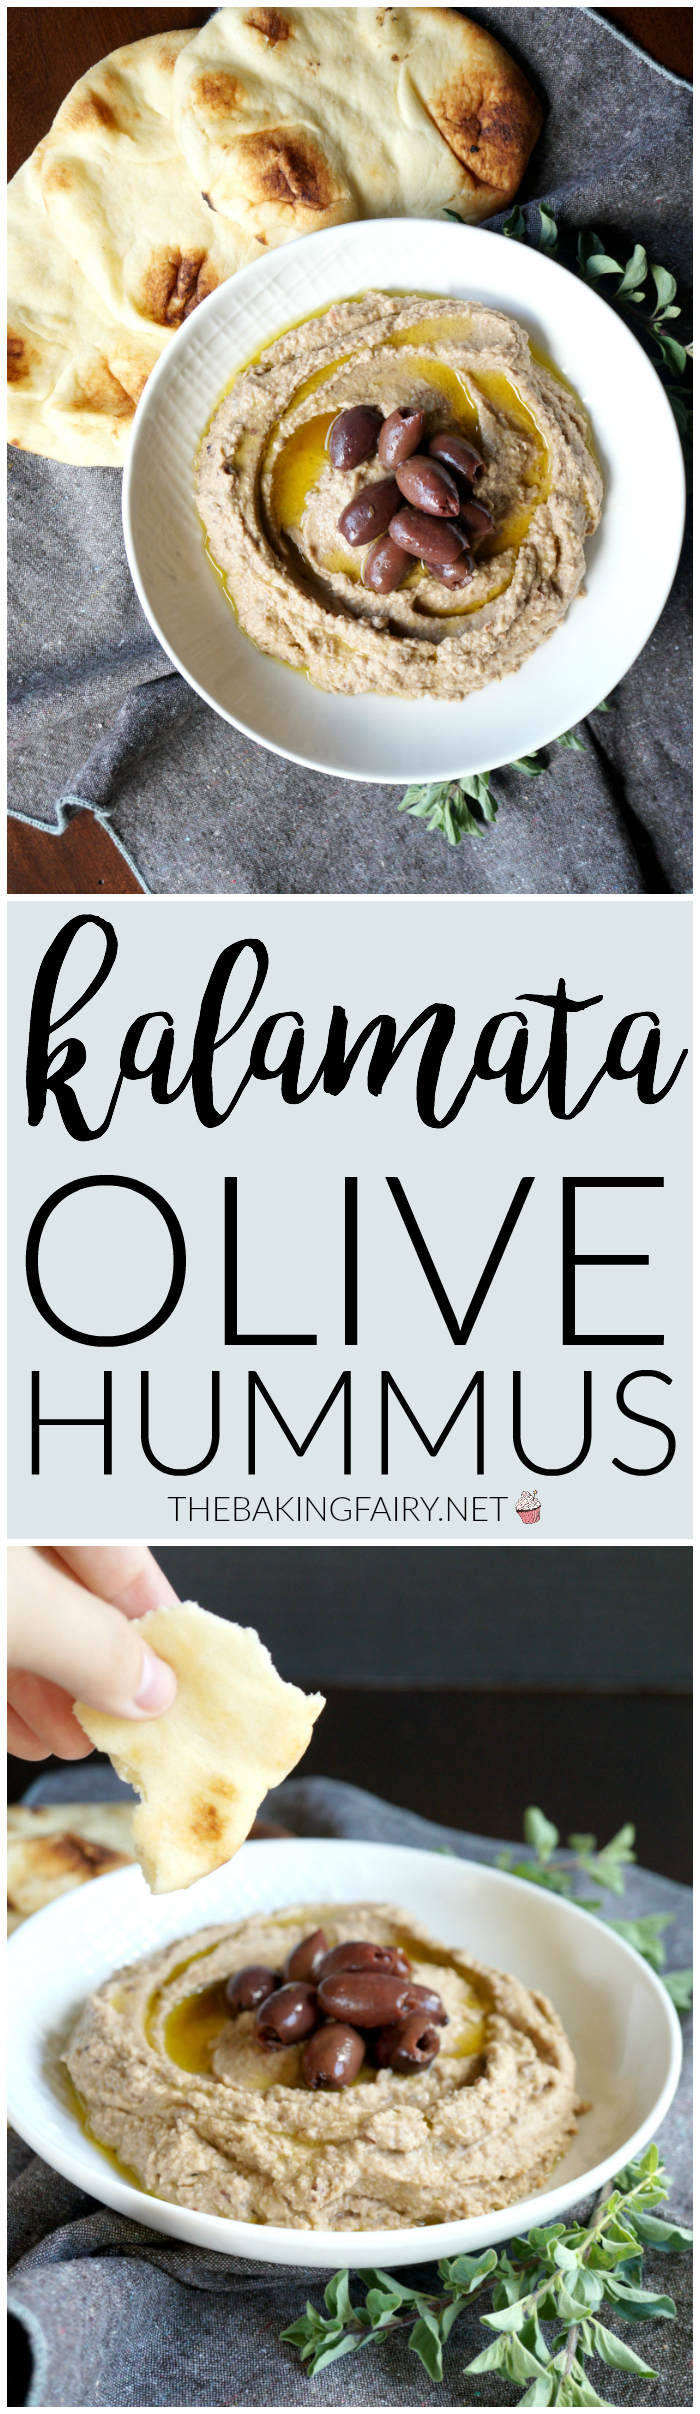 kalamata olive hummus | The Baking Fairy